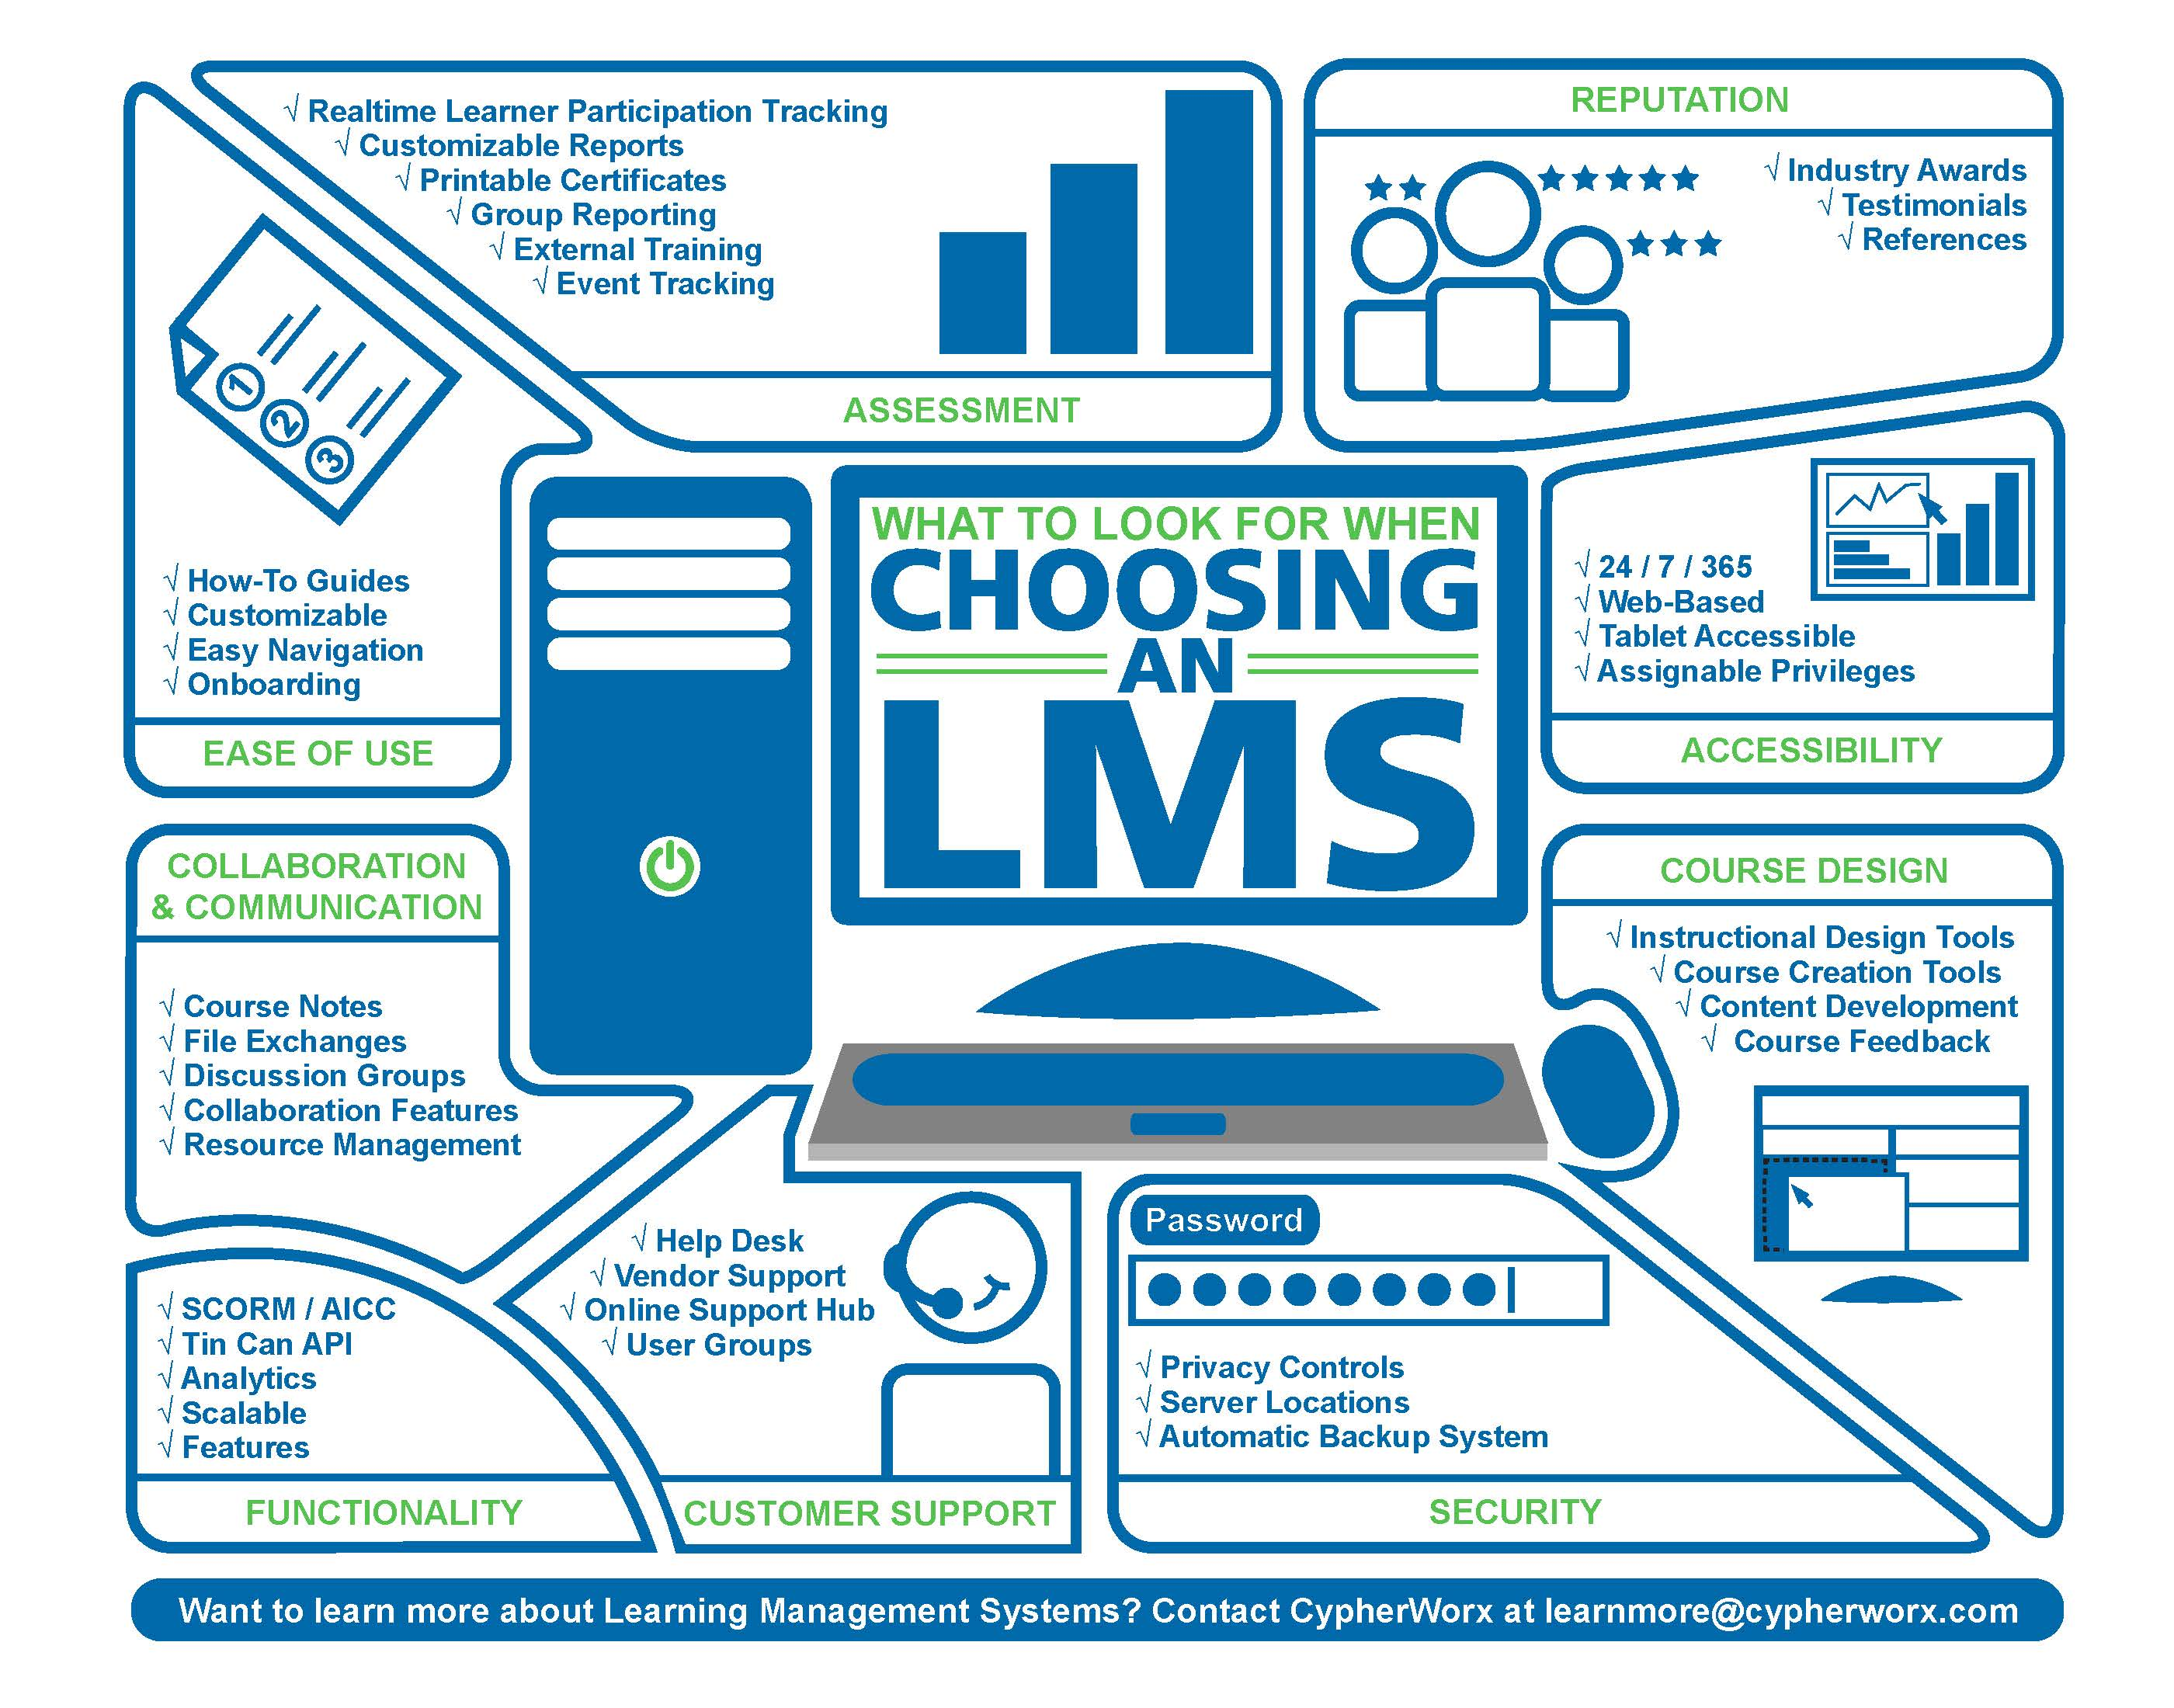 What To Look For When Choosing an LMS